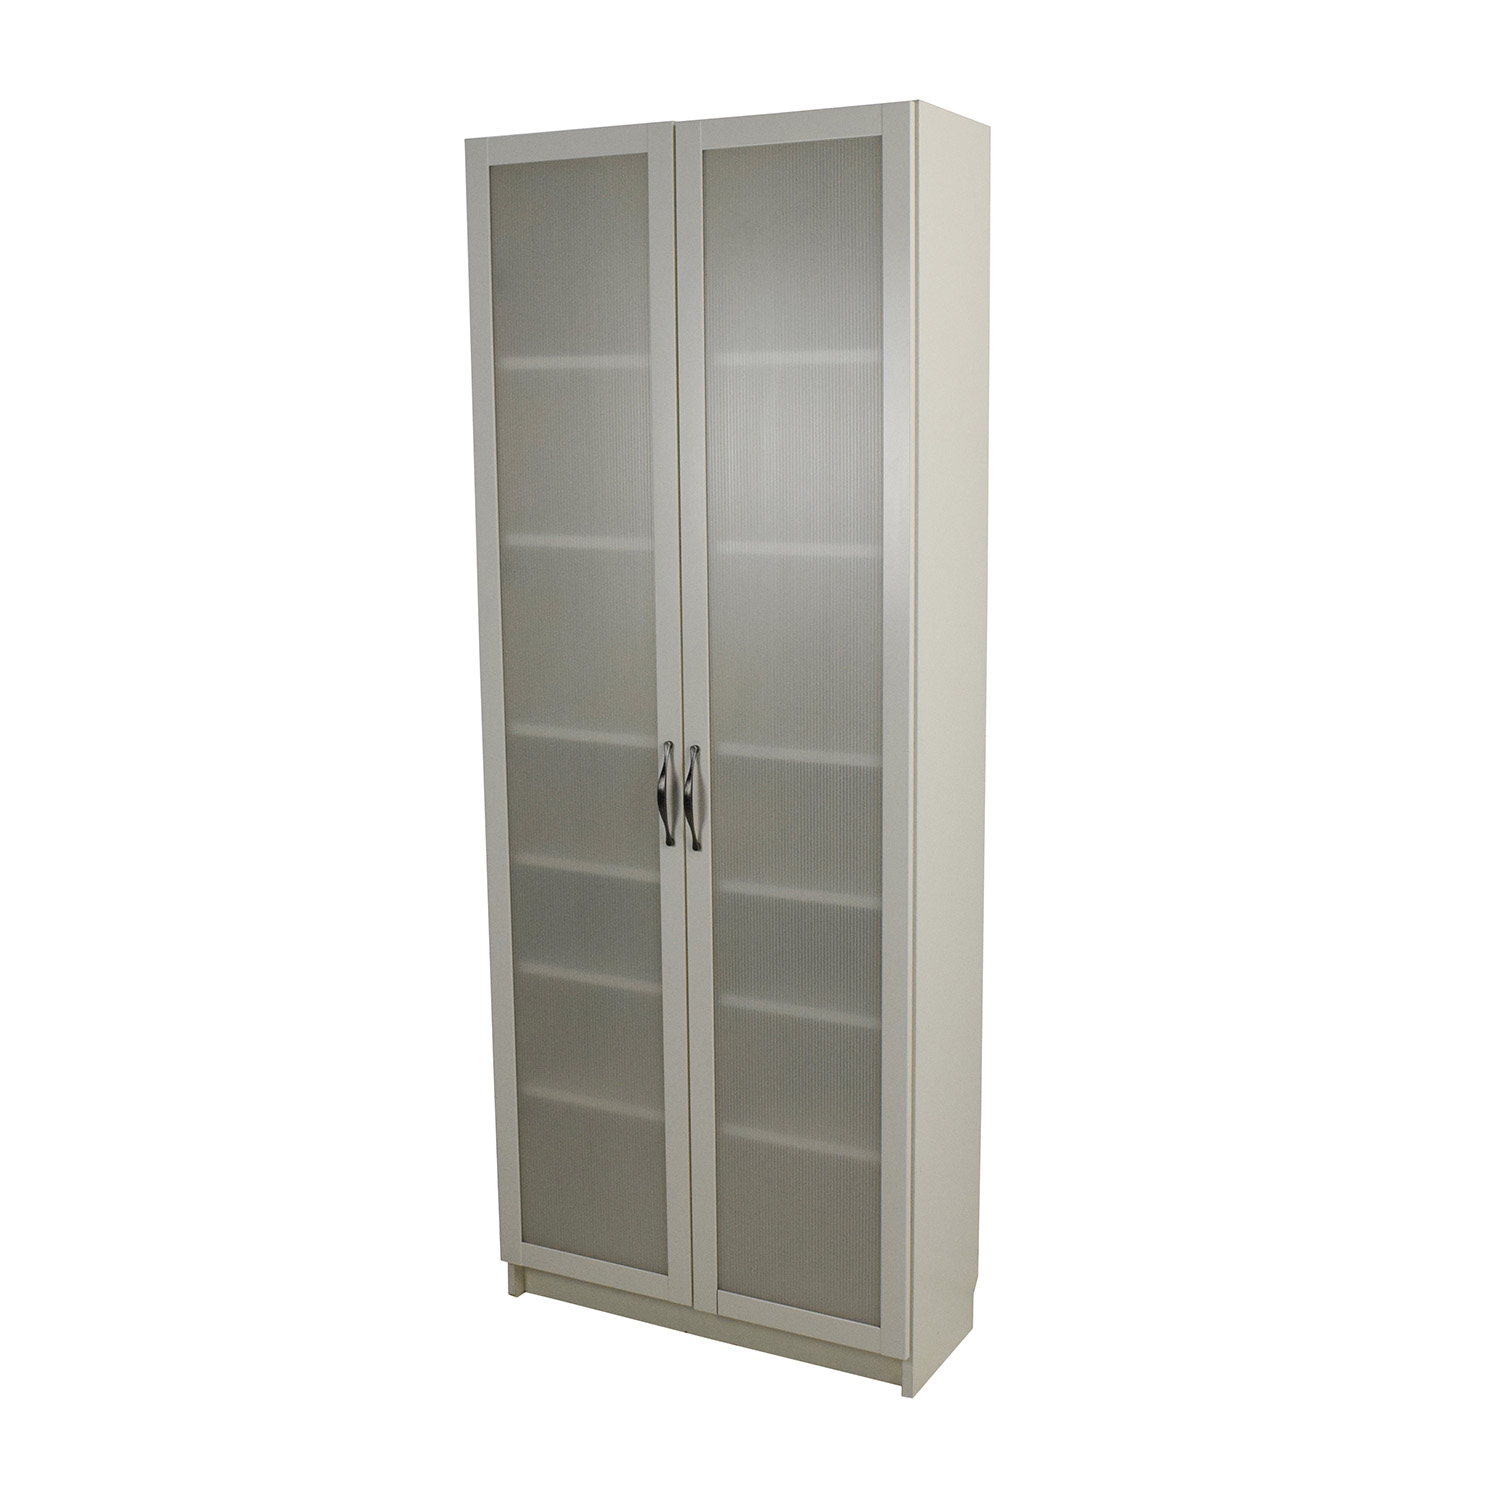 56 off ikea ikea white glass door cabinet storage - Ikea glass cabinets ...